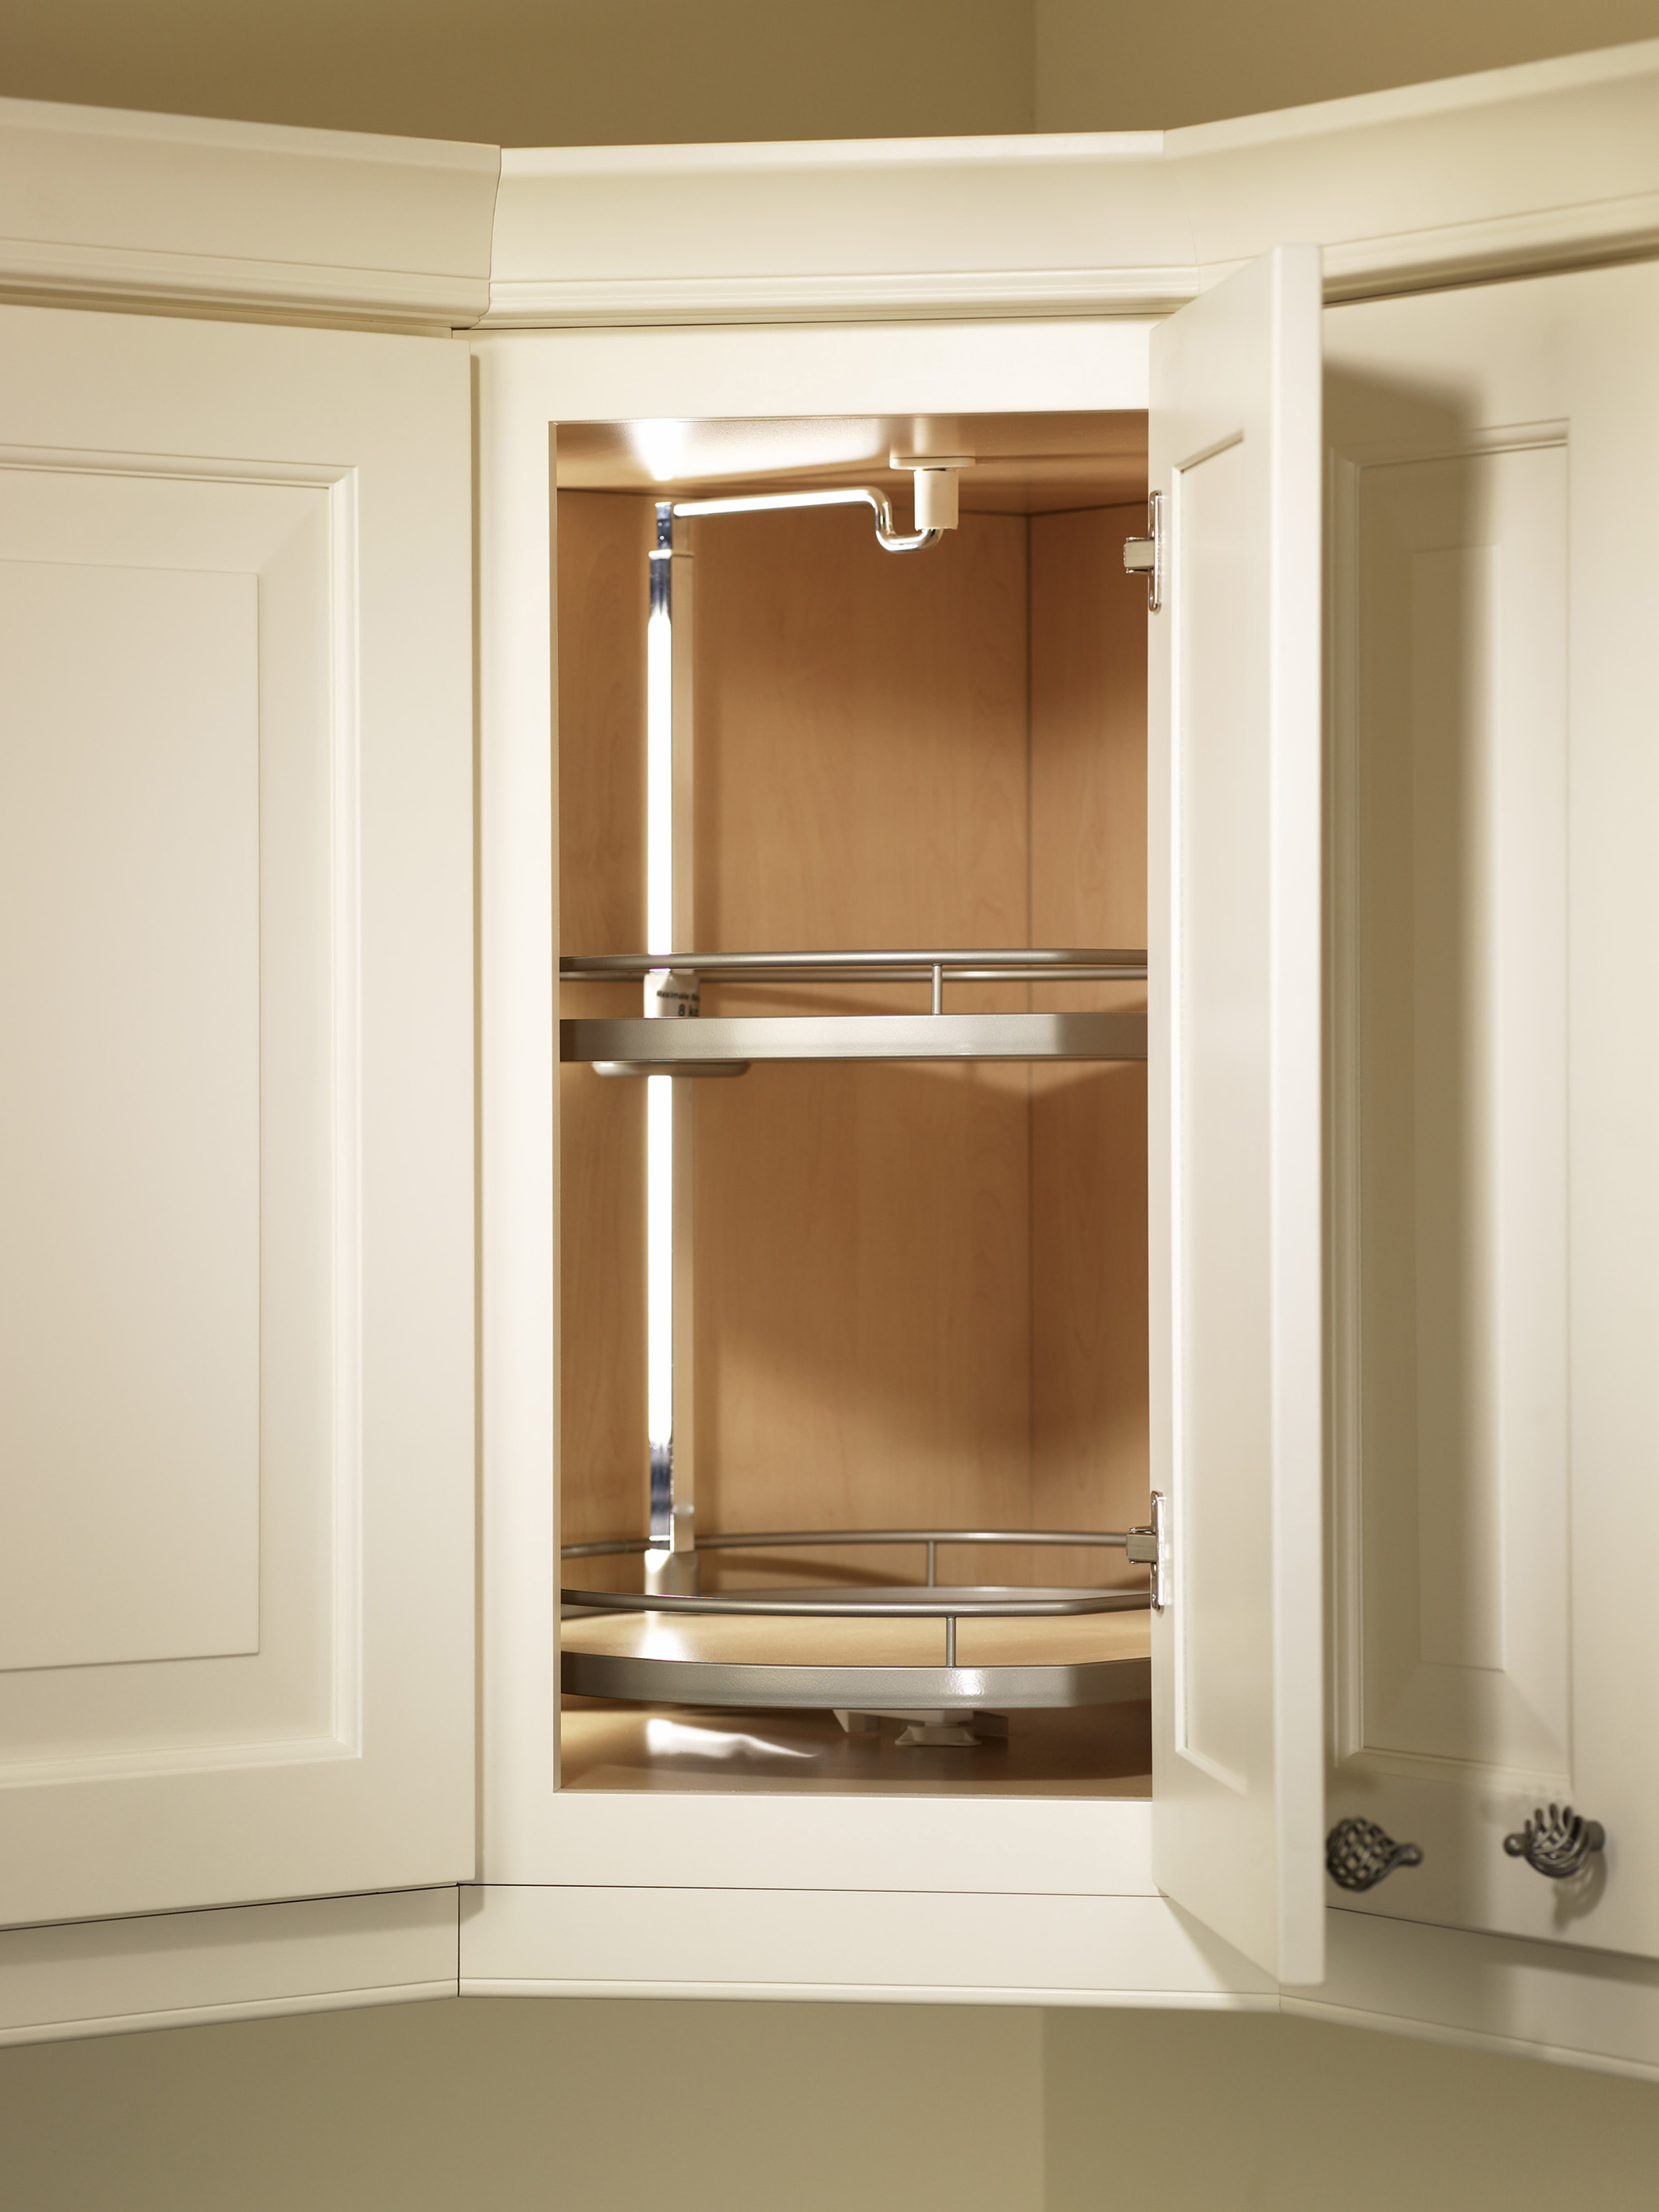 Imagine a revolving storage solution at the perfect height for the dishes and serve ware you use every day. The TWISTER puts an end to reaching deep into the back of a corner wall cabinet to find what you need. Up to three ARENA trays keep items stored securely, and a revolving post offset to the edge provides extra space for larger items – and a lot more convenience for you.